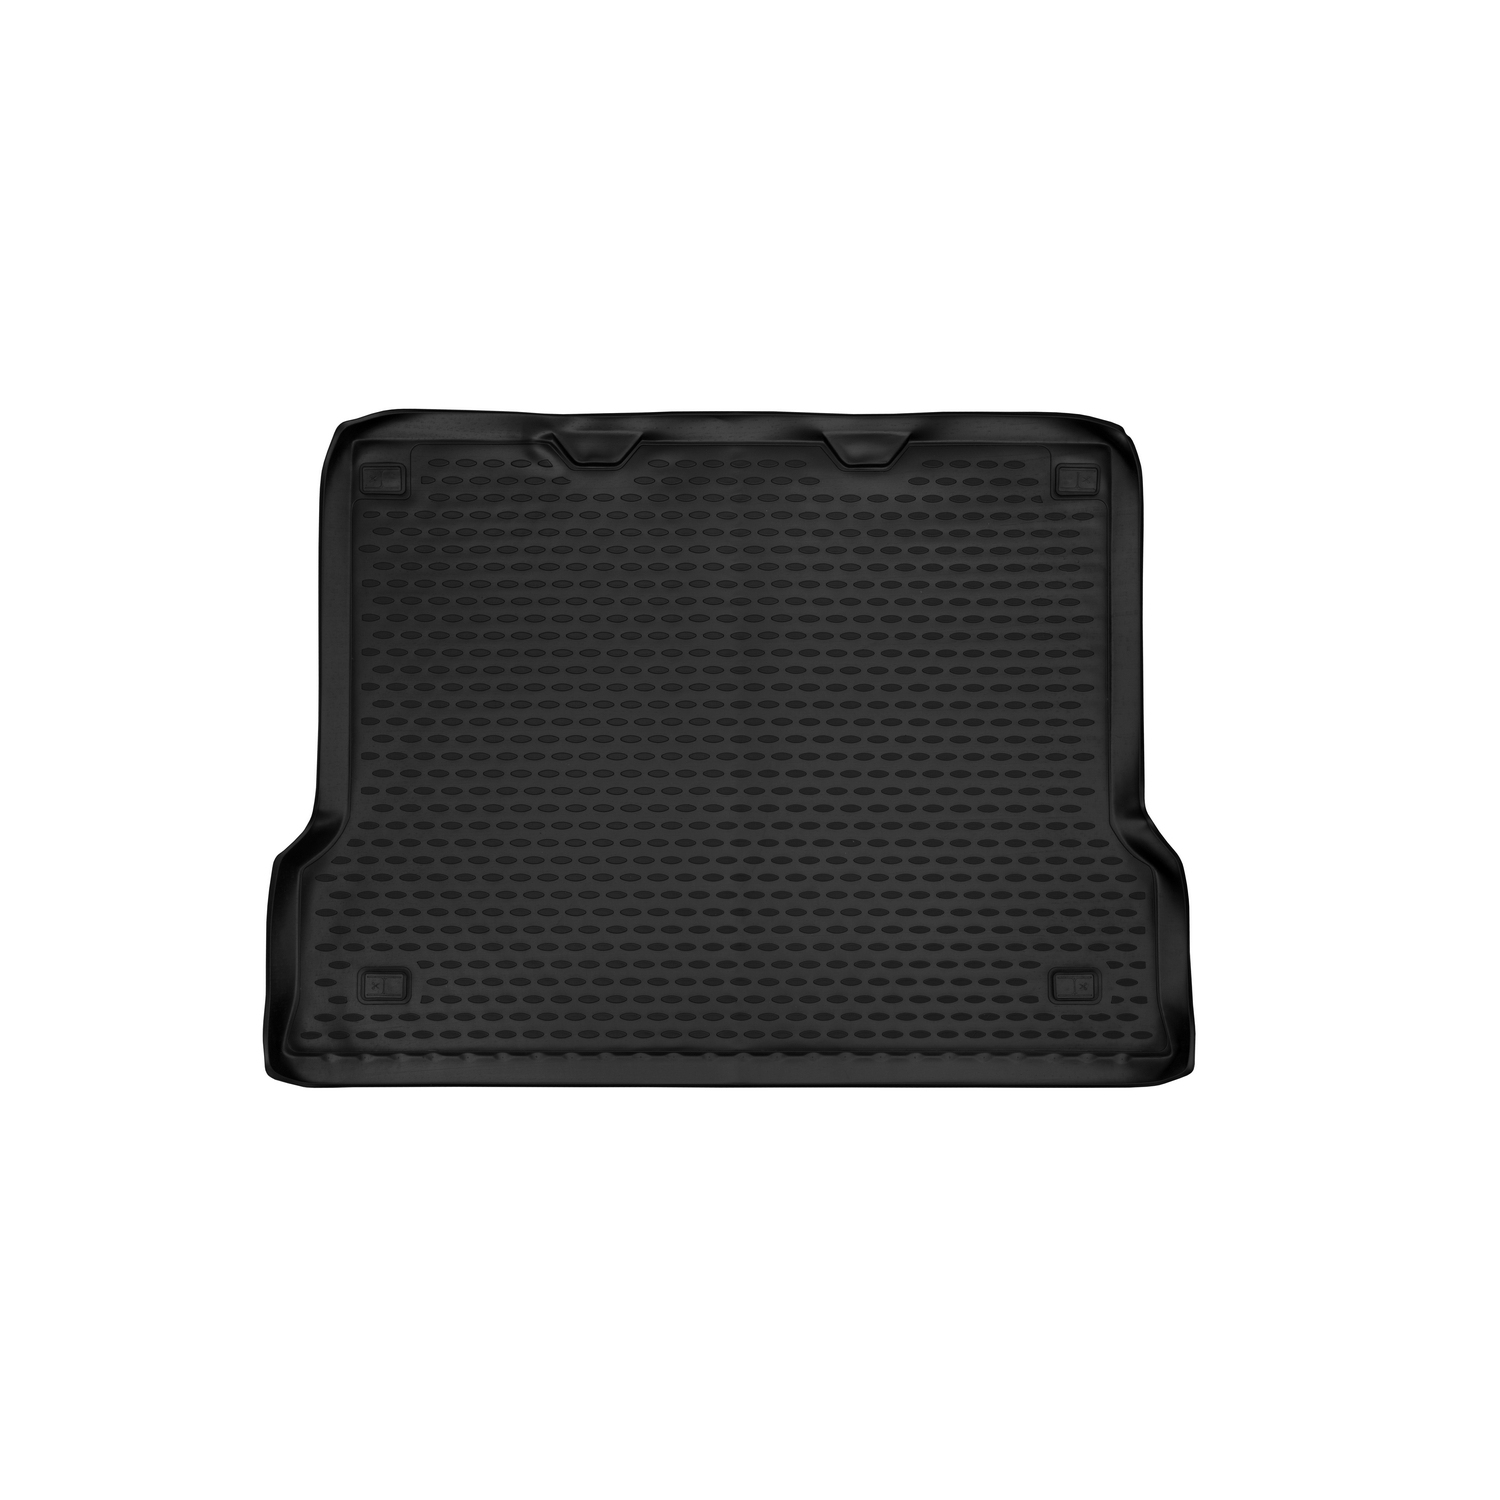 Trunk Mat For UAZ 3163, 09/2014, 1 PCs 31639-5109050